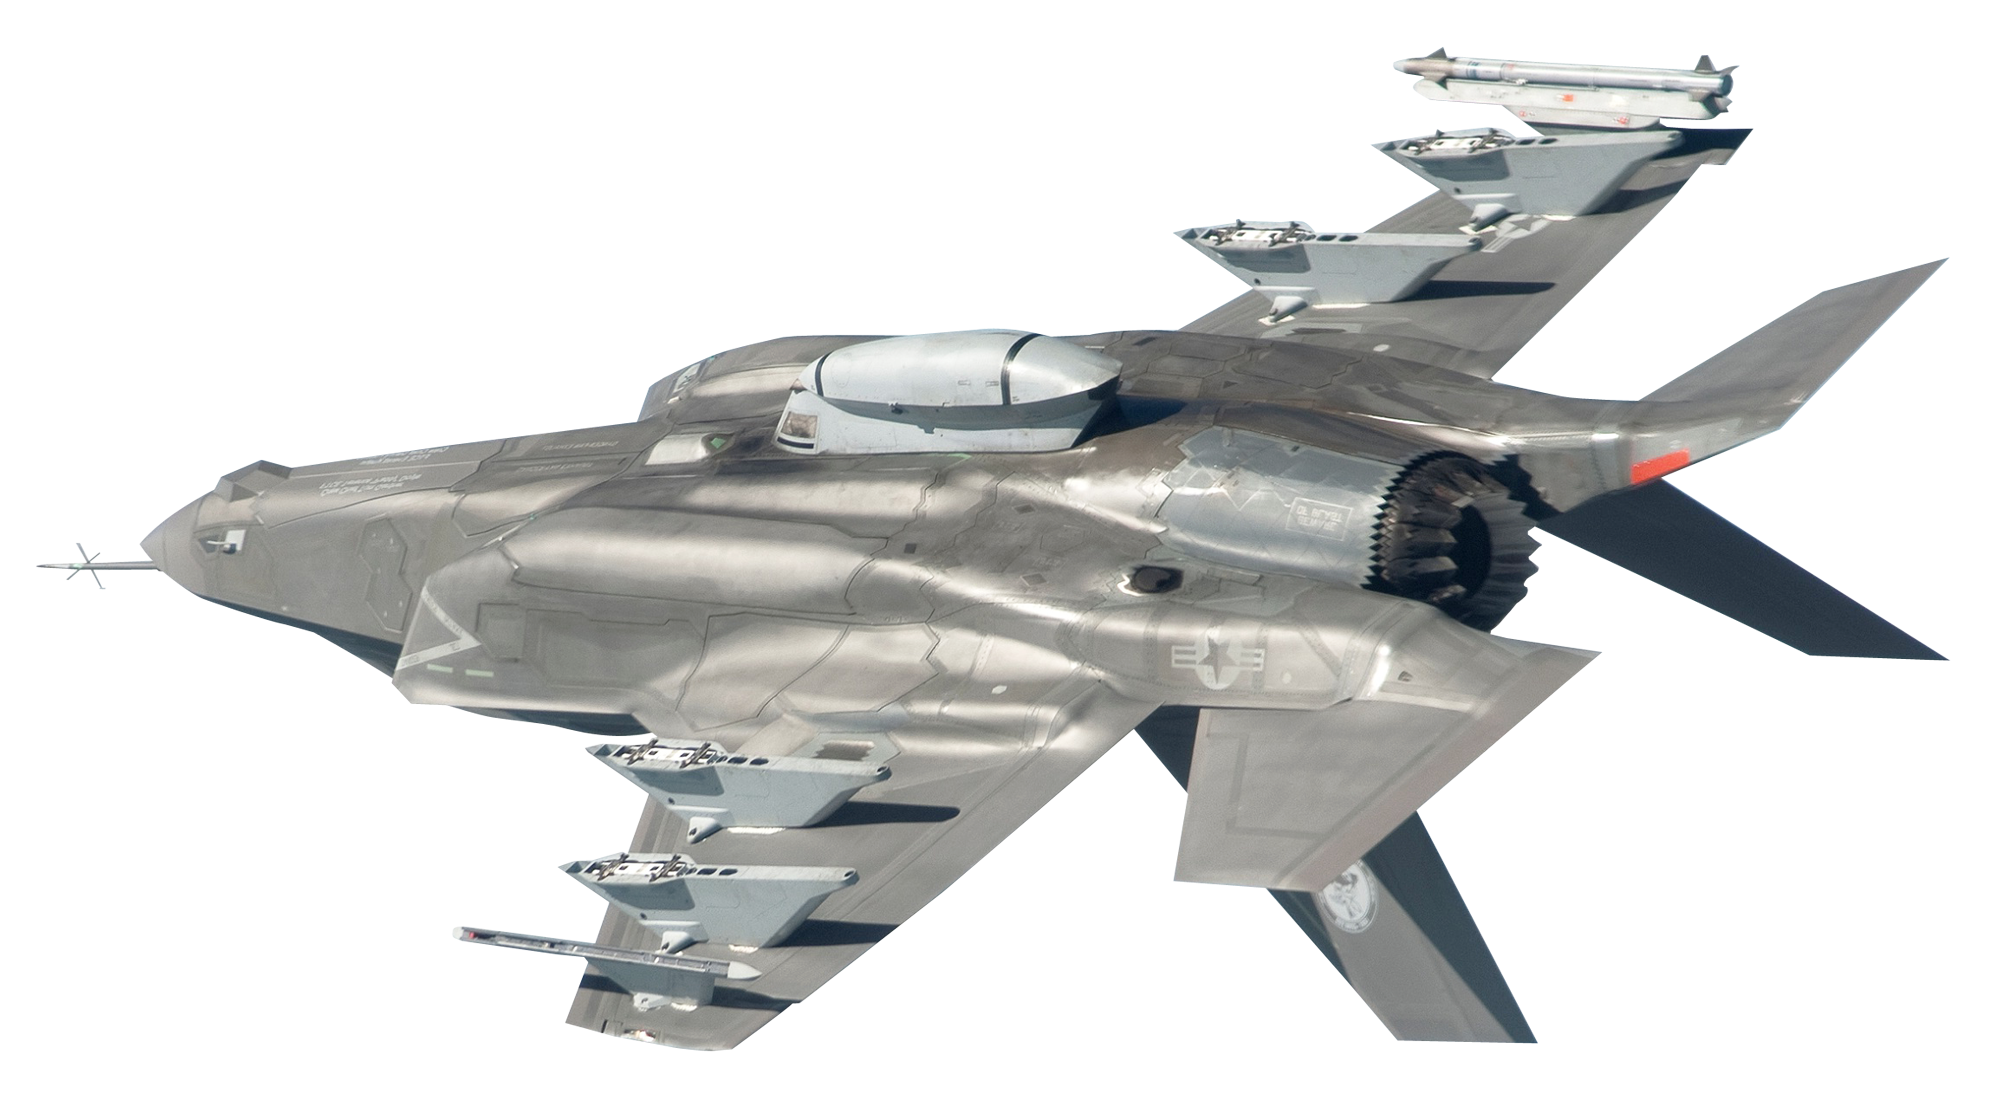 Military Jet Png Image Military Jets Military Jet